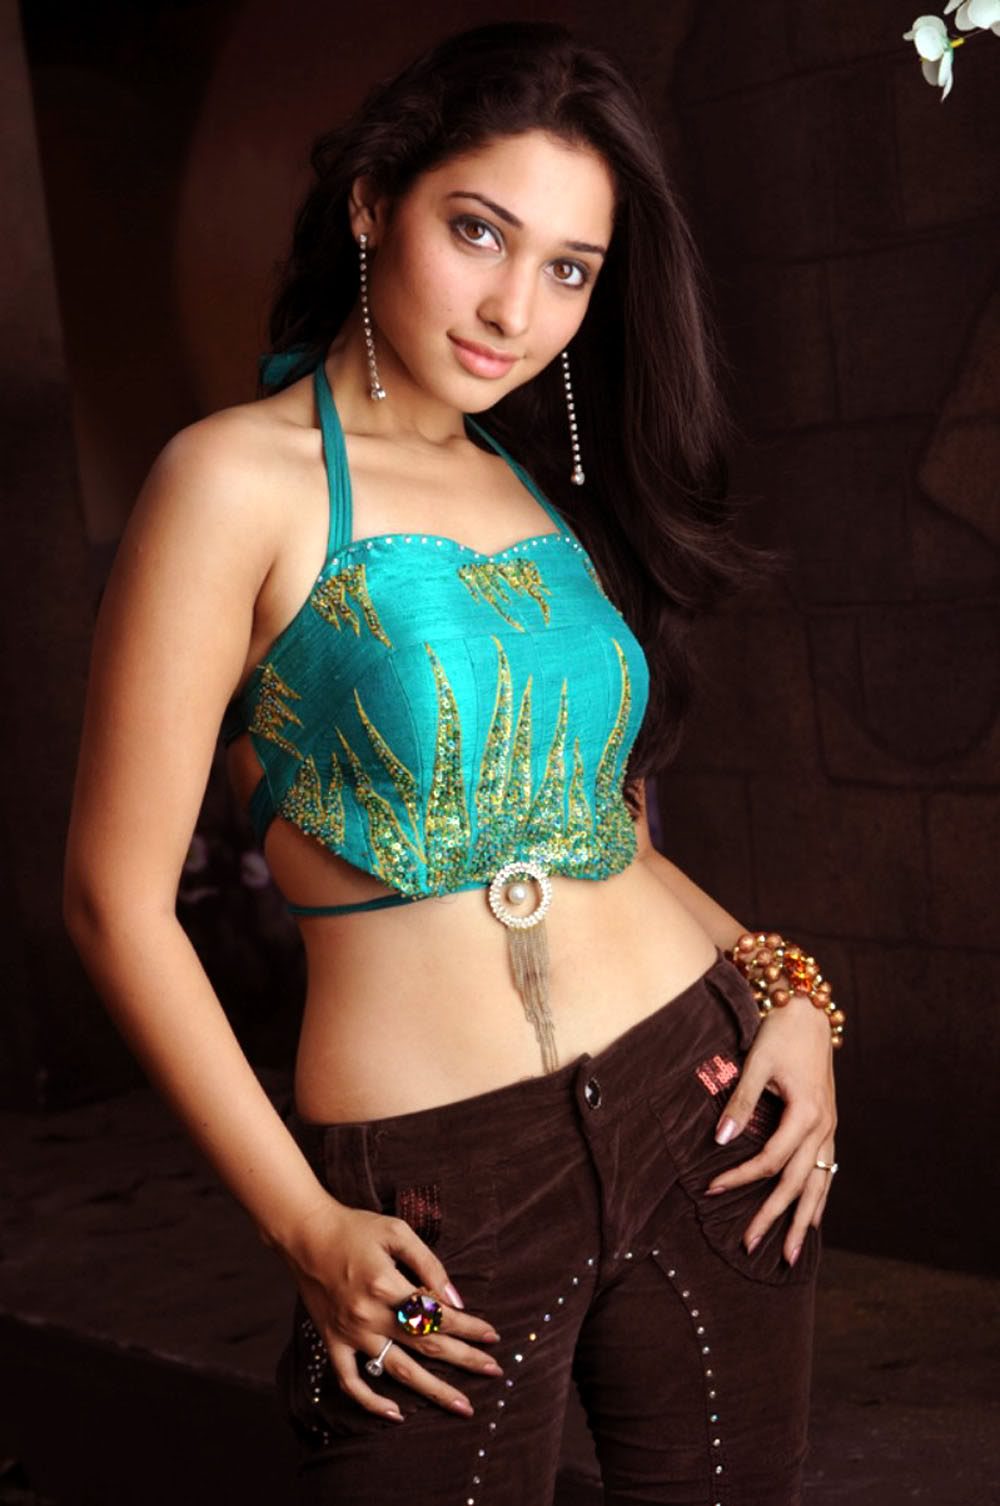 tamana chat rooms Teens sex video clips from naughty america the best teens xxx videos in hd quality.